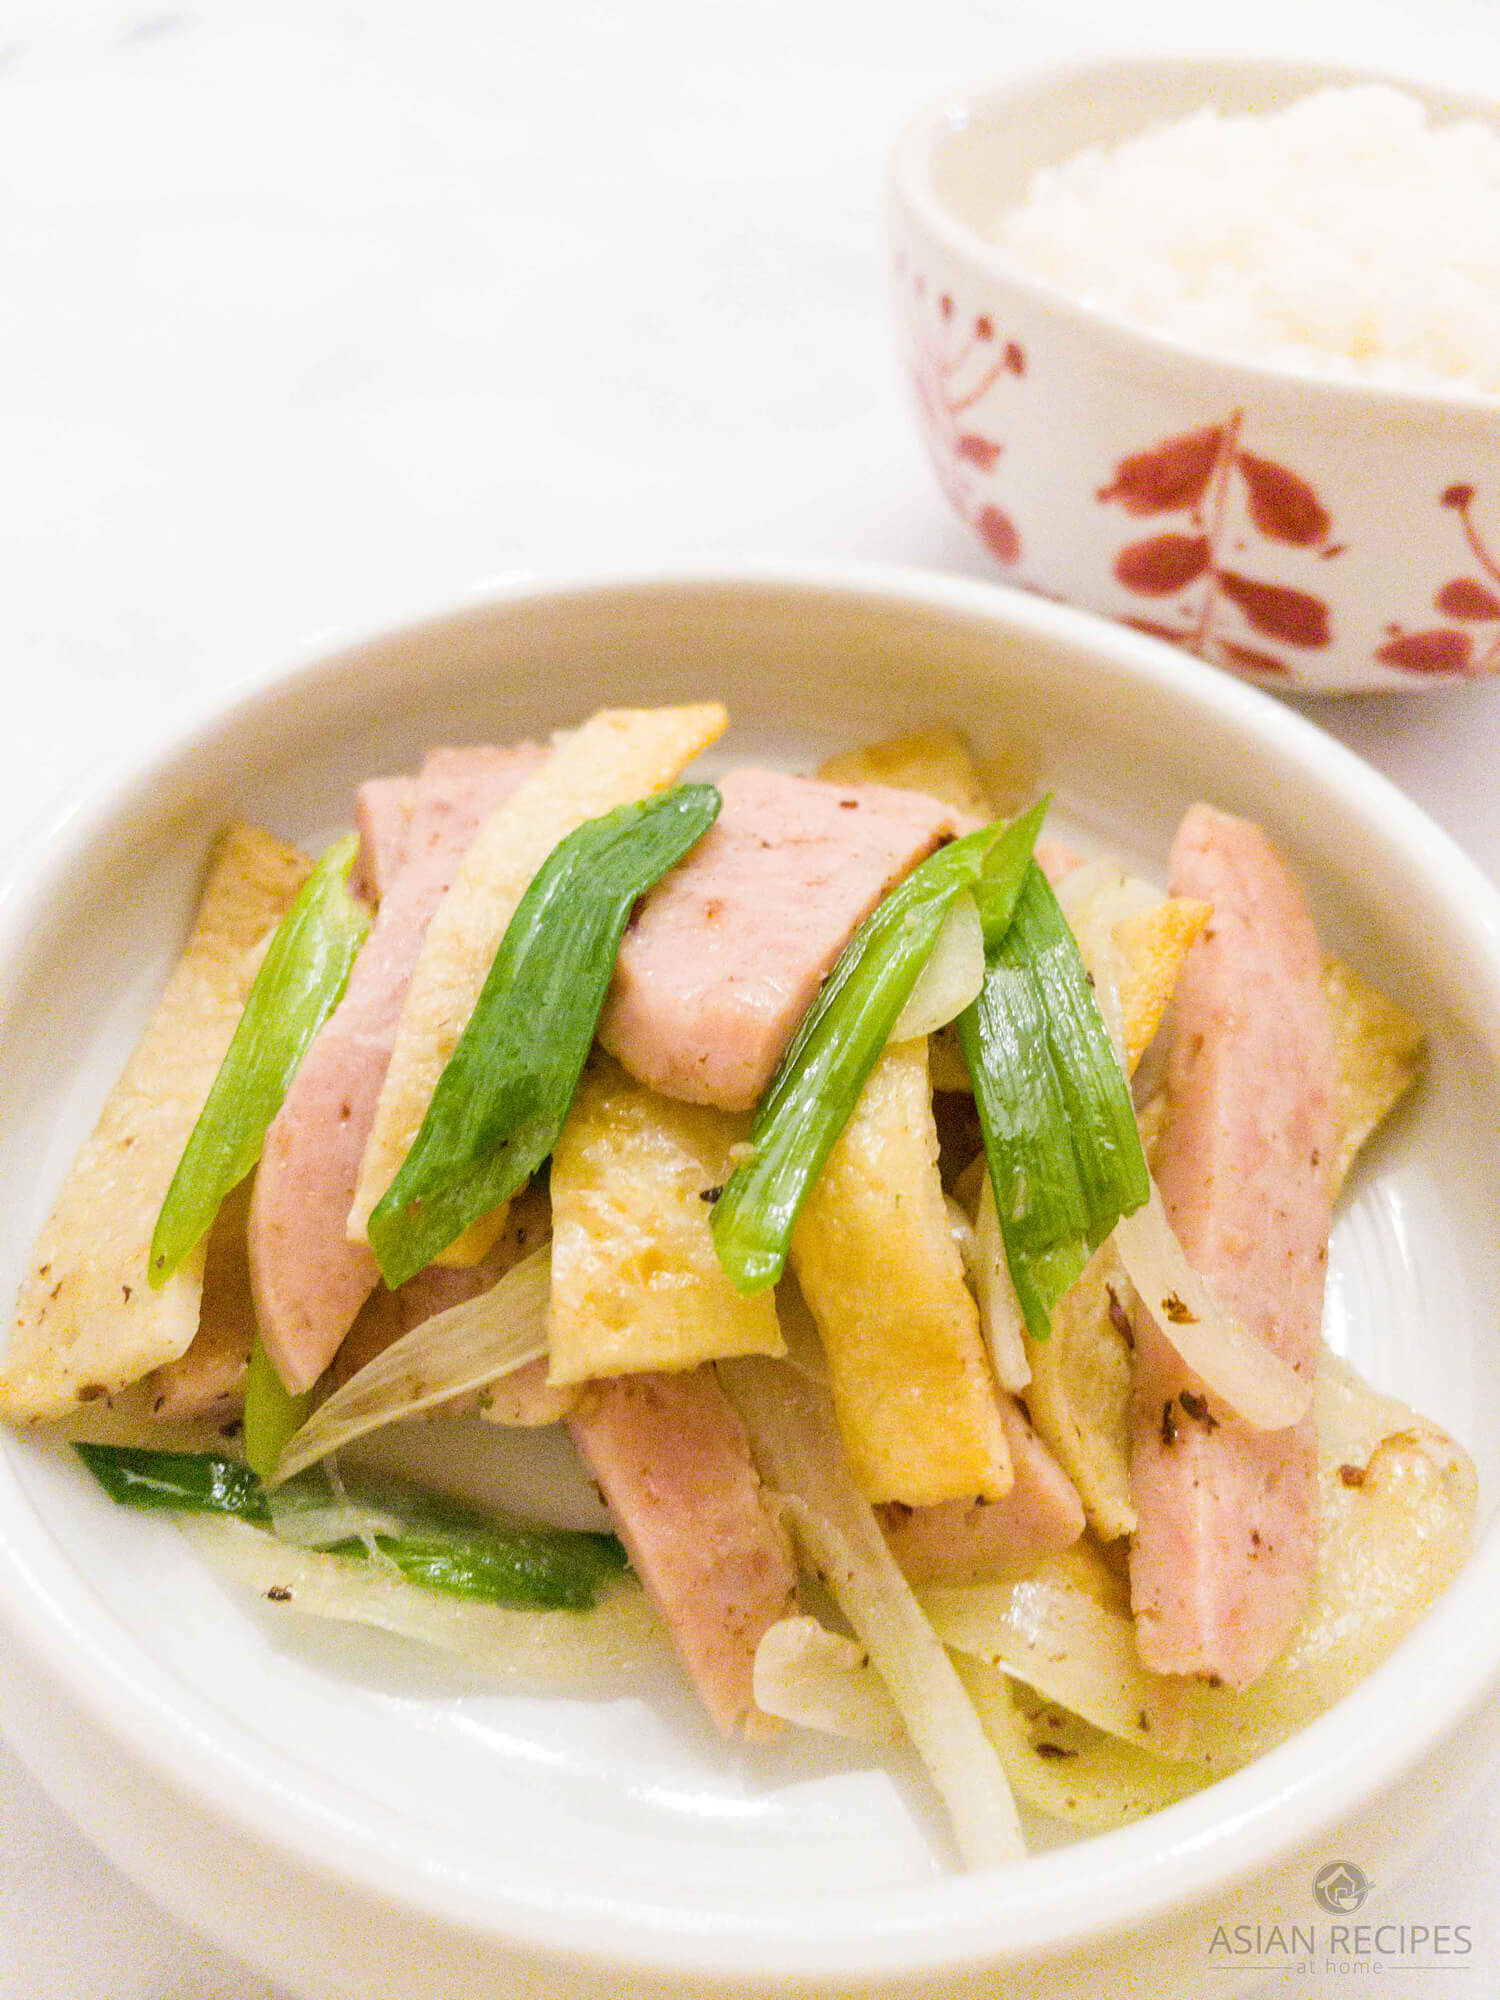 This side dish recipe is made with Spam, Korean-style flat fish cakes and onions.